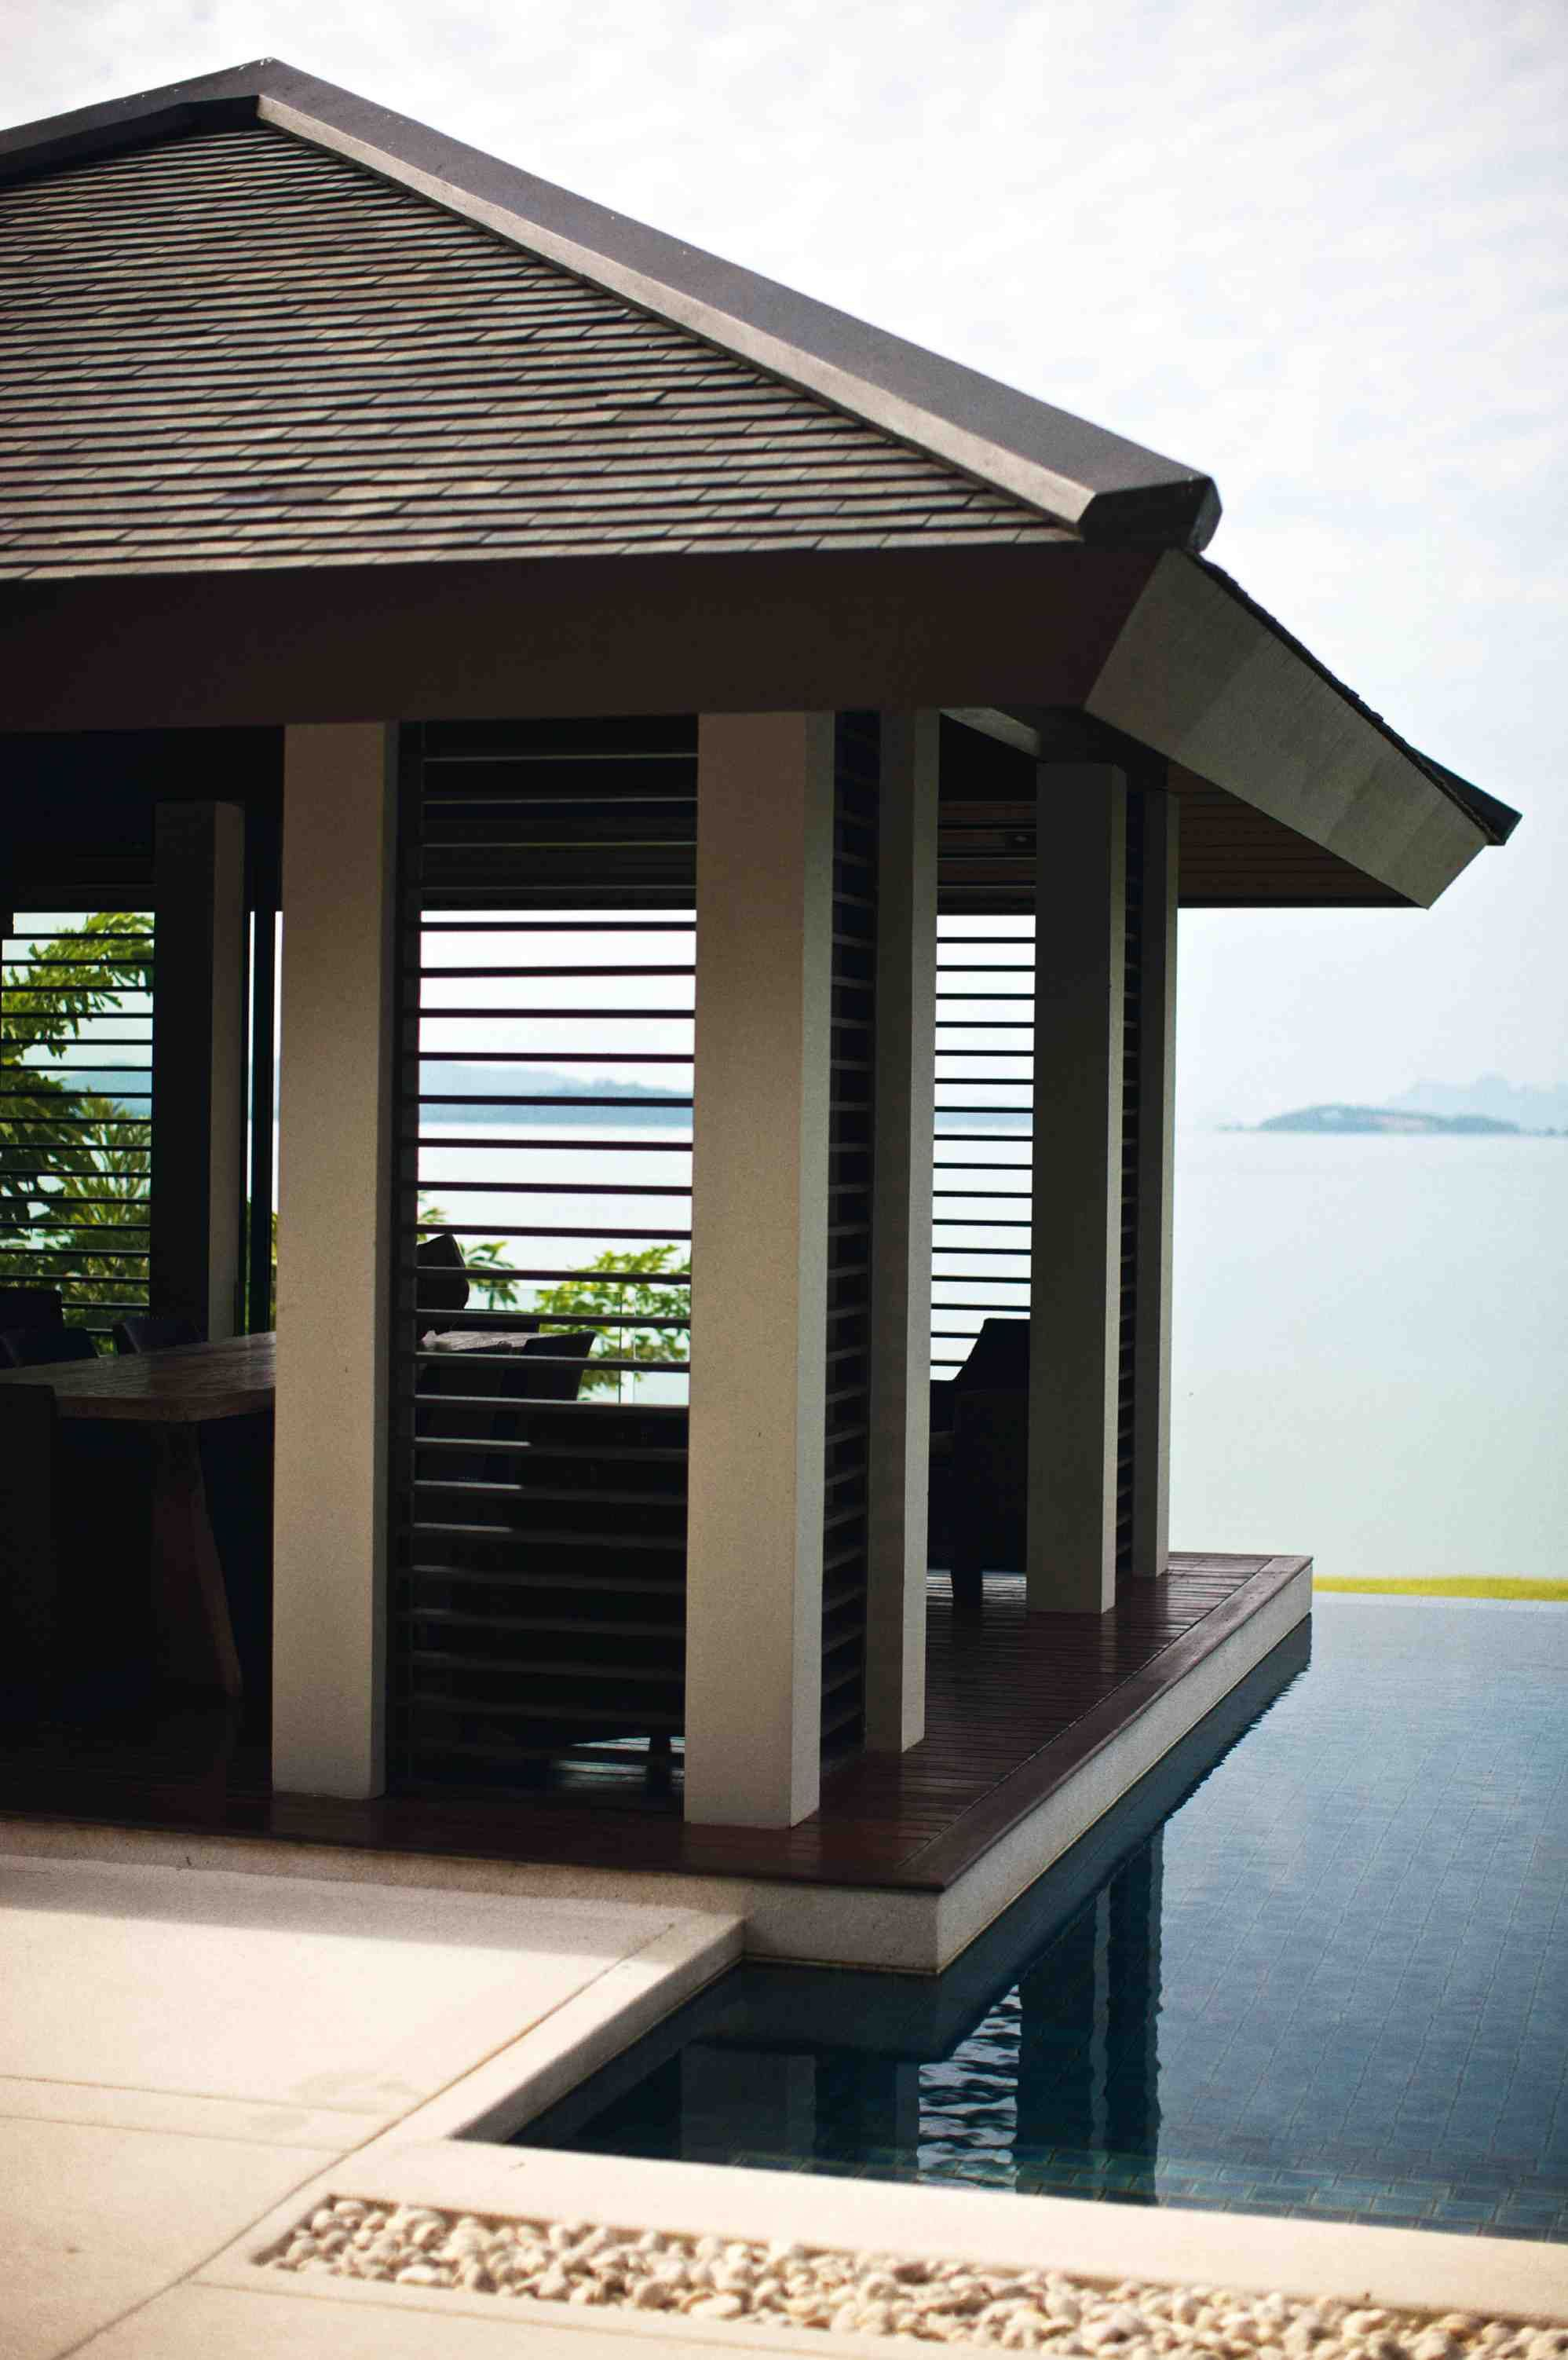 Thailand Private Residence Eric Kuster photo s by Paul Barbera